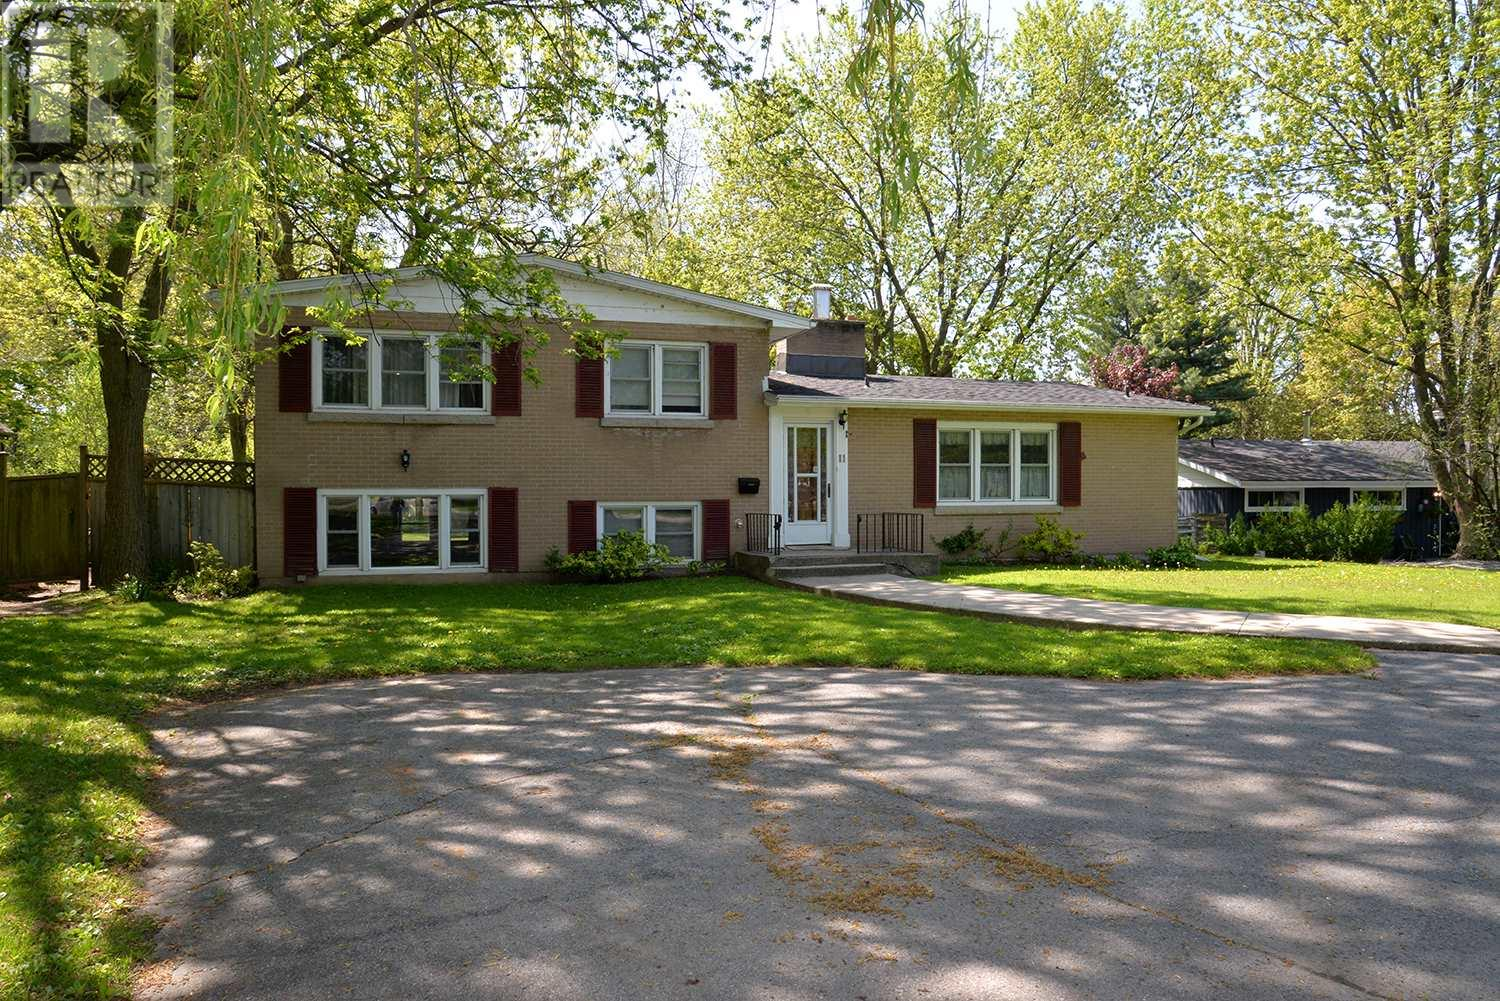 Removed: 11 Loyalist Avenue, Amherstview, ON - Removed on 2019-06-25 06:00:14